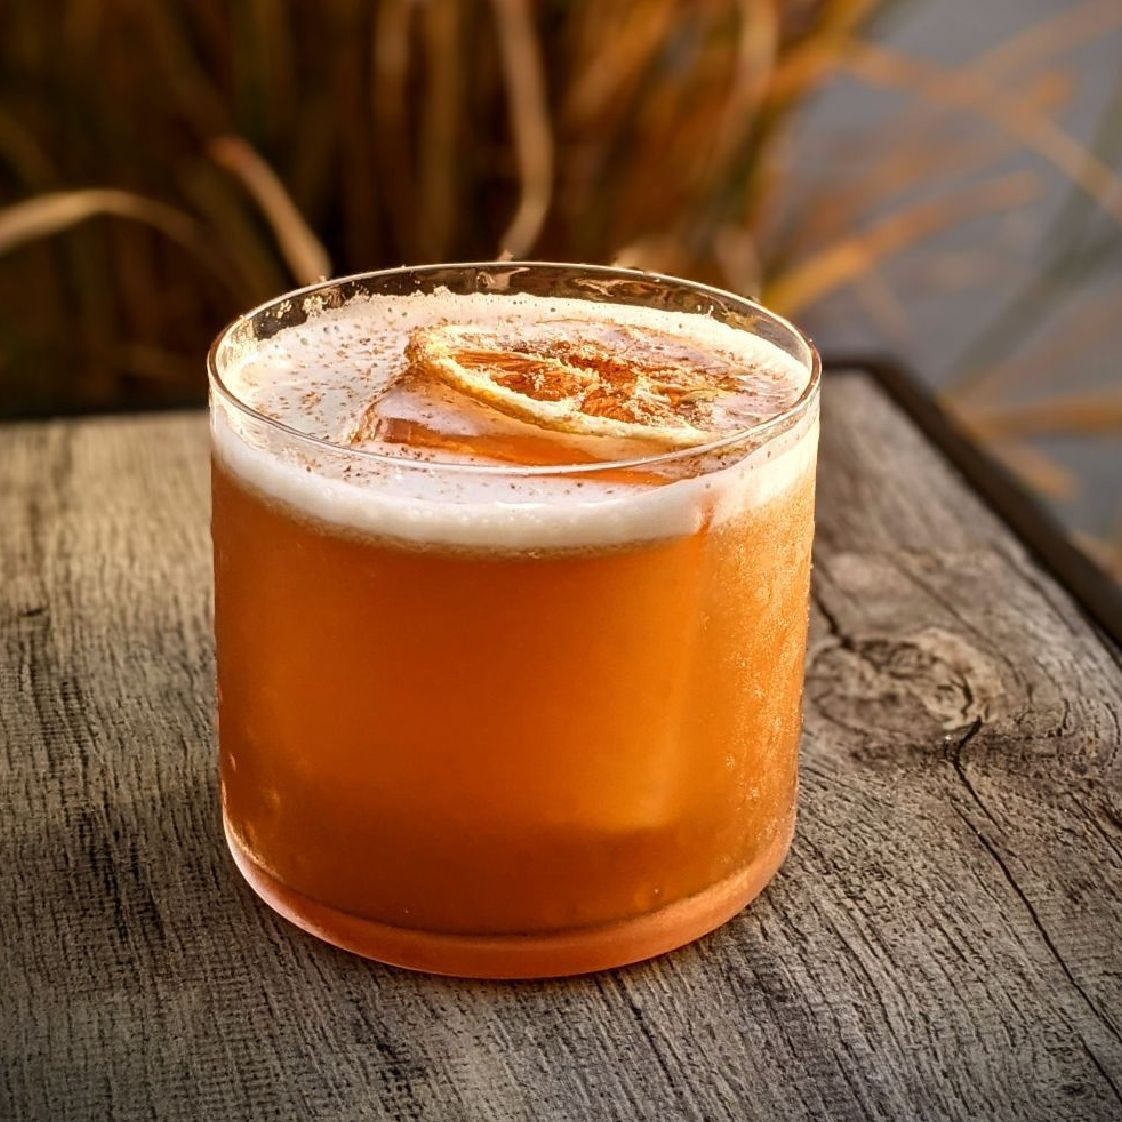 Here, I wanted a Fall cocktail with unique ingredients, being inspired by the Detroiter created by Jason Schiffer.